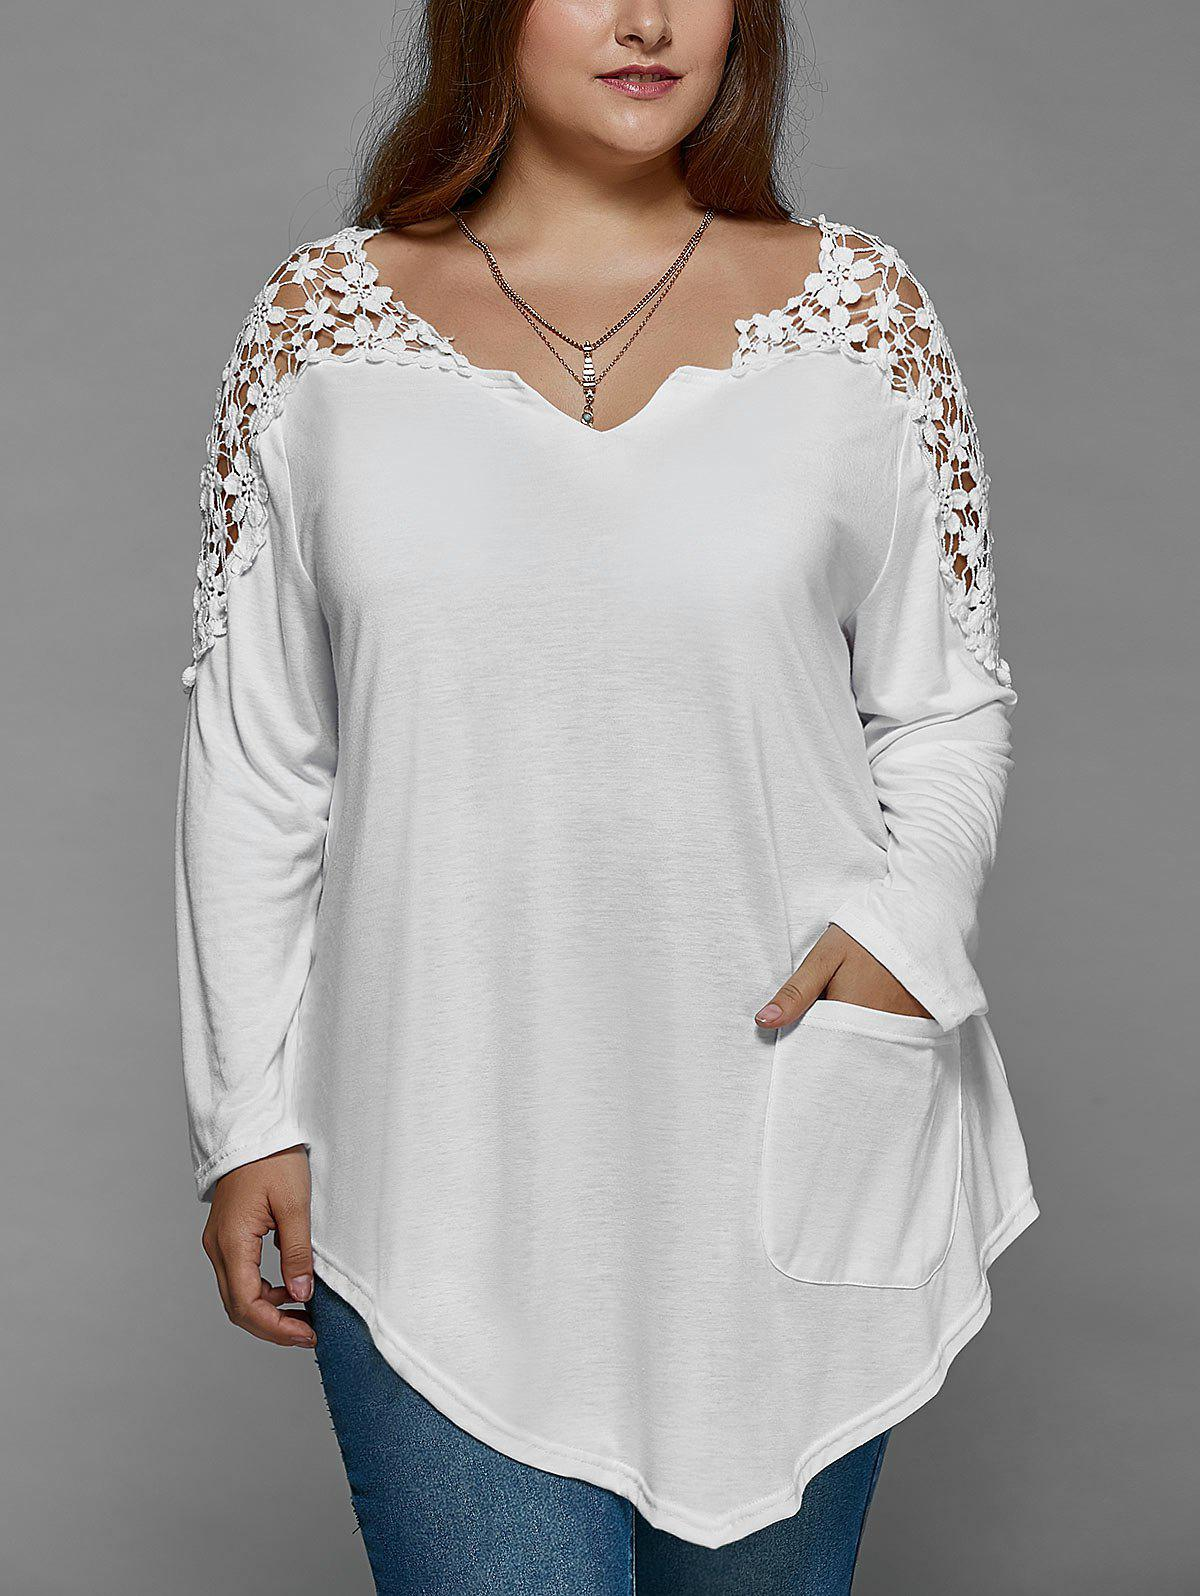 Plus Size Lace Insert Long Sleeve Tunic T-ShirtWOMEN<br><br>Size: 3XL; Color: WHITE; Material: Lace,Polyester; Shirt Length: Regular; Sleeve Length: Full; Collar: V-Neck; Style: Fashion; Season: Fall,Spring; Pattern Type: Patchwork; Weight: 0.2200kg; Package Contents: 1 x T-Shirt;